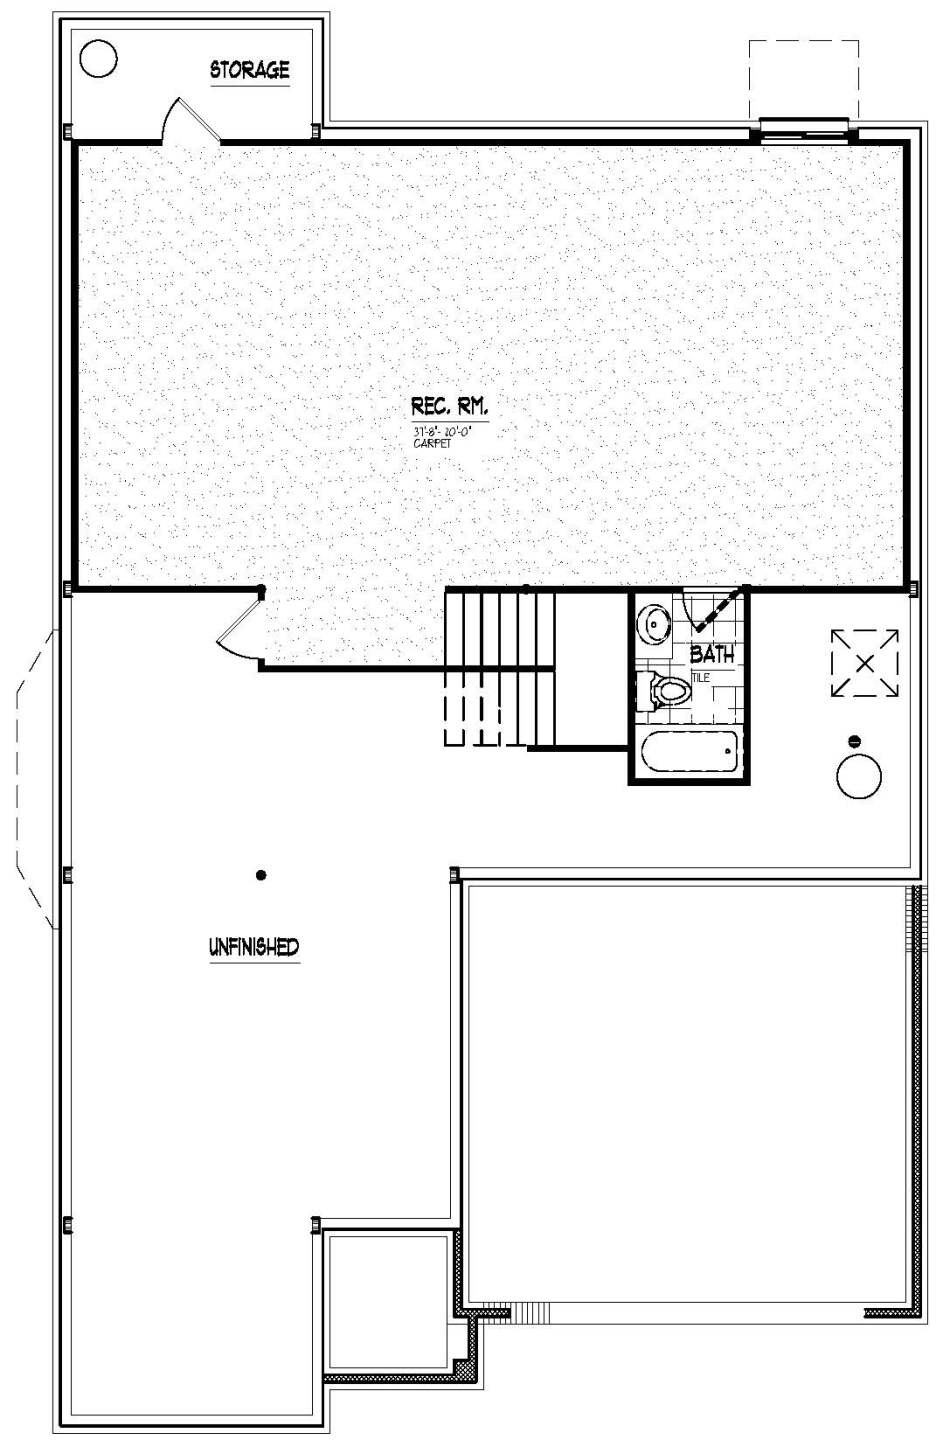 Raleigh Basement Opt 1Plan.jpg